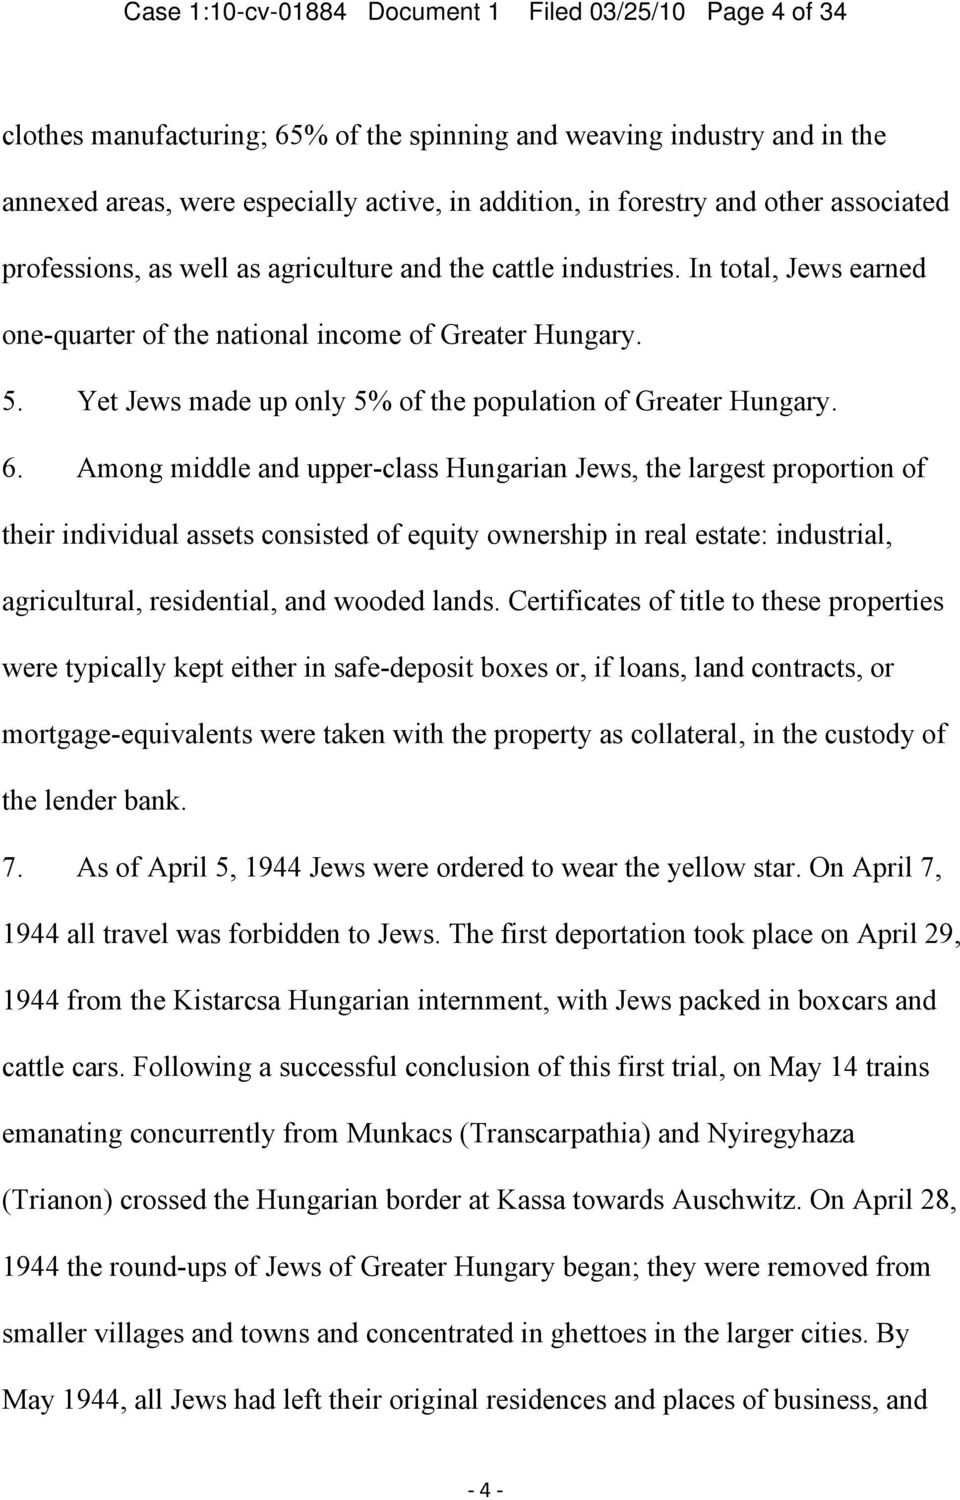 Yet Jews made up only 5% of the population of Greater Hungary. 6.